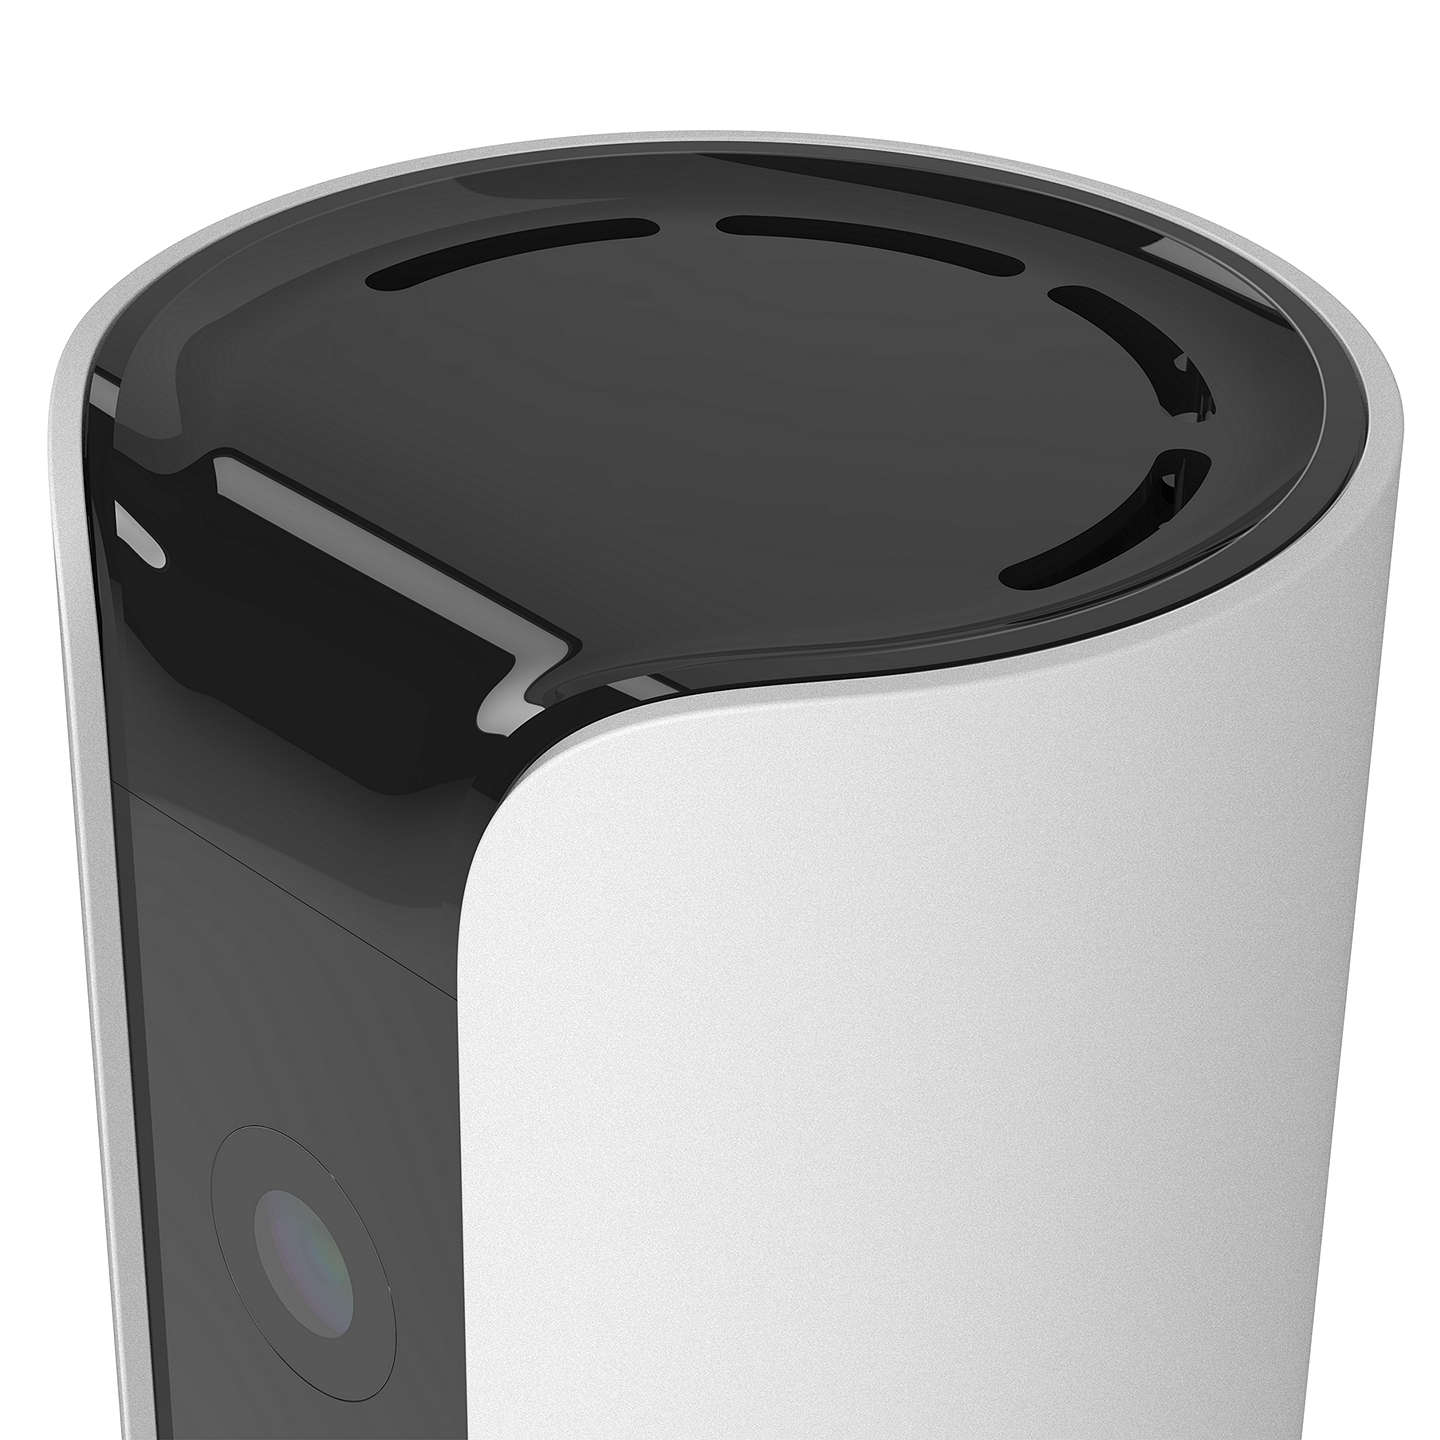 BuyCanary All-In-One Security System, White Online at johnlewis.com